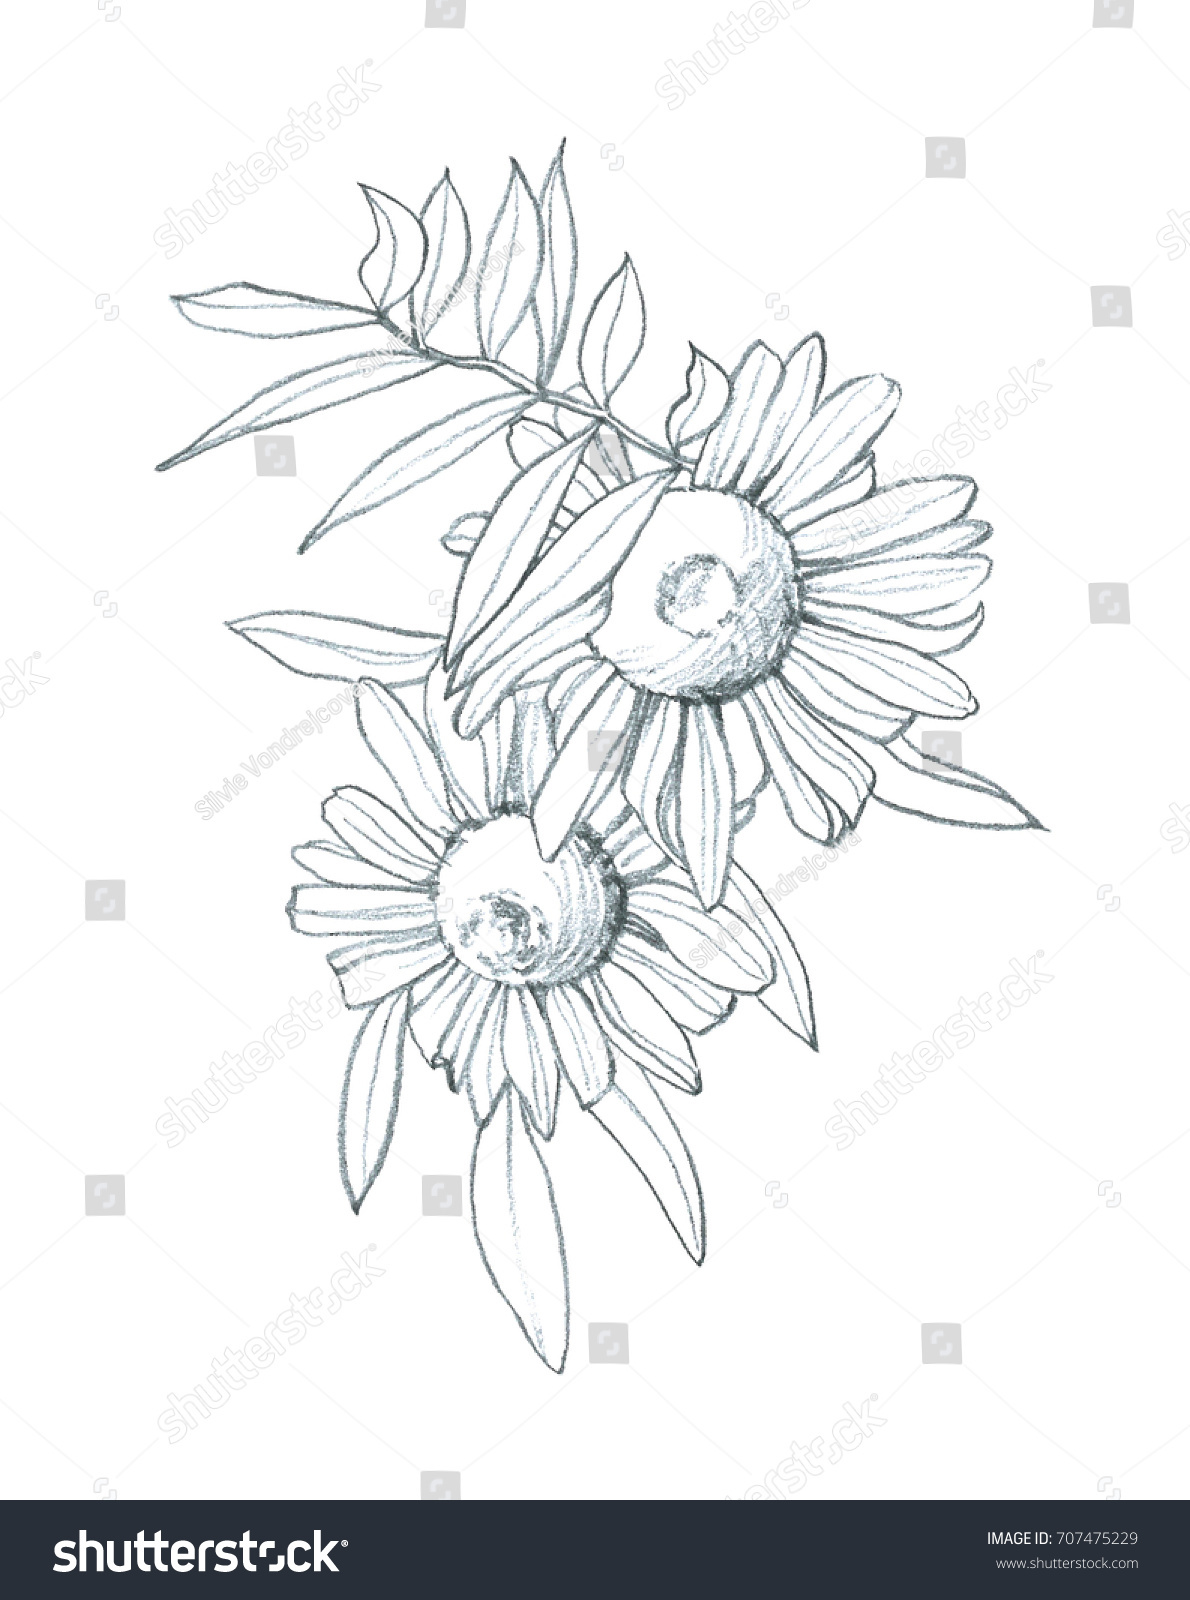 Daisy Flower Hand Pencil Drawing Ez Canvas